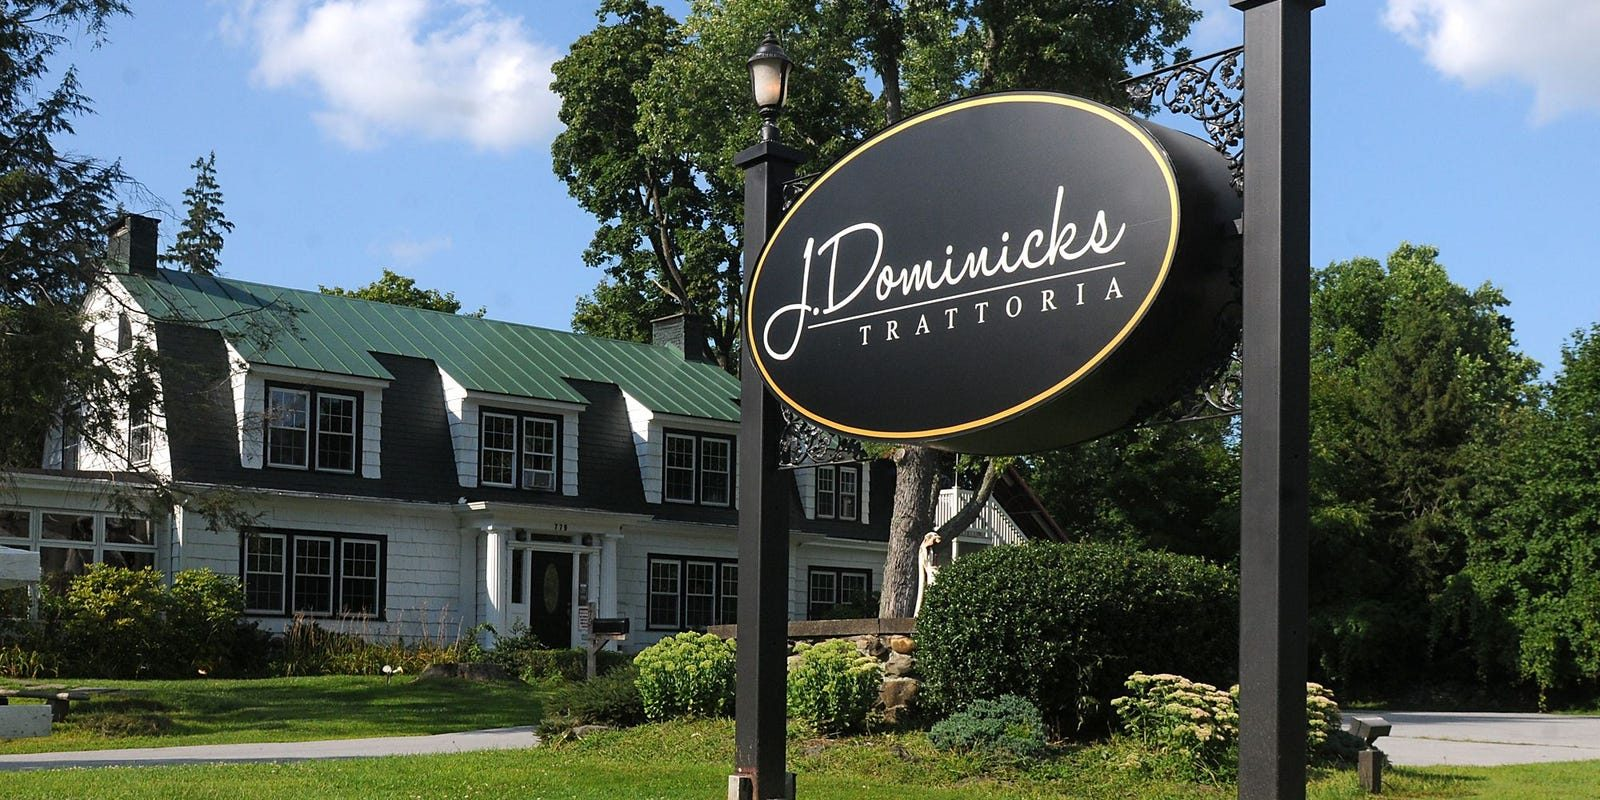 J Dominick's Trattoria Psychic Medium Event  Poughkeepsie, New York  Thursday January 28th 2021